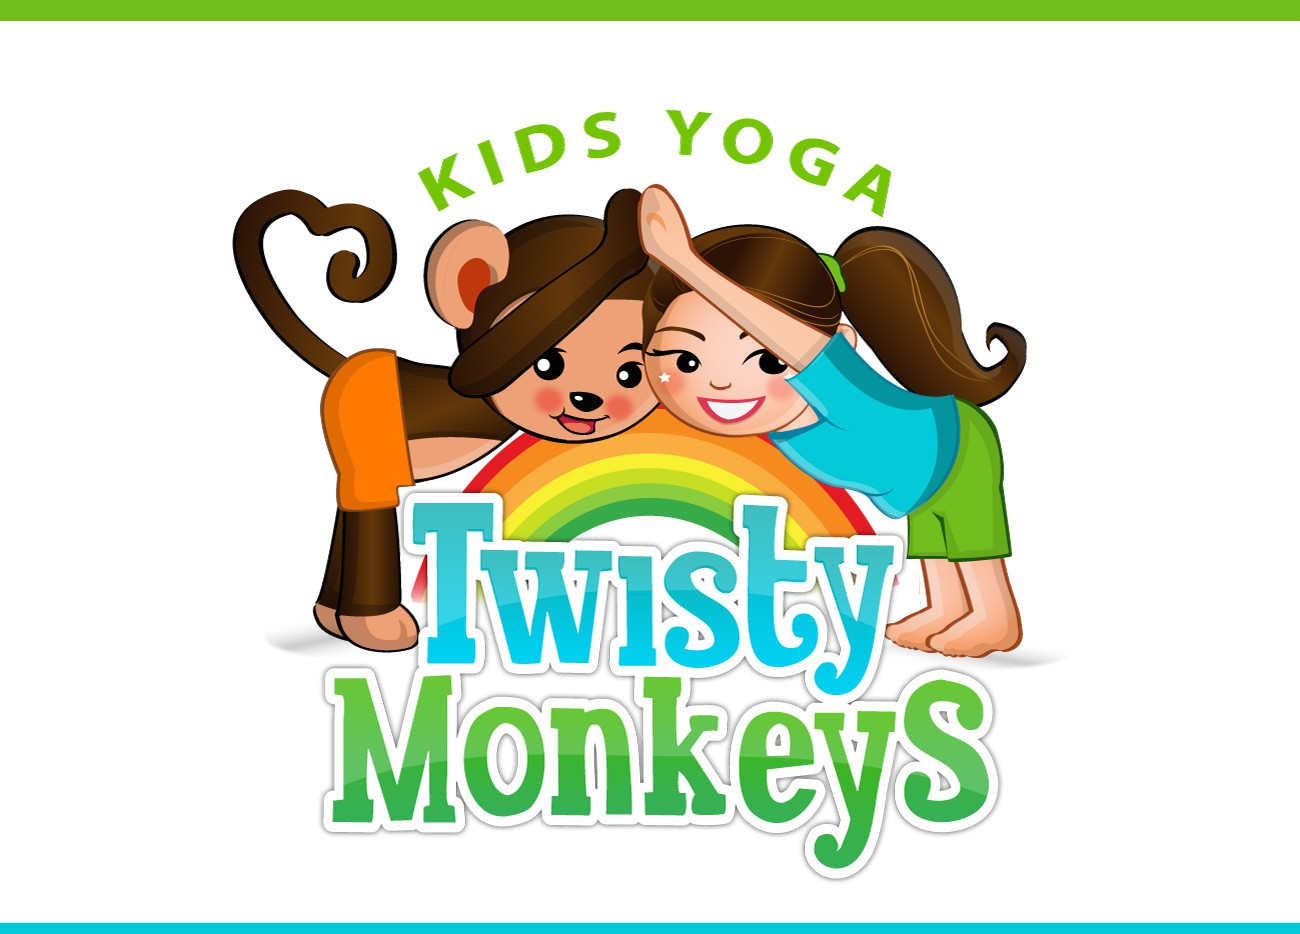 Twisty Monkeys Kids Yoga needs a new logo